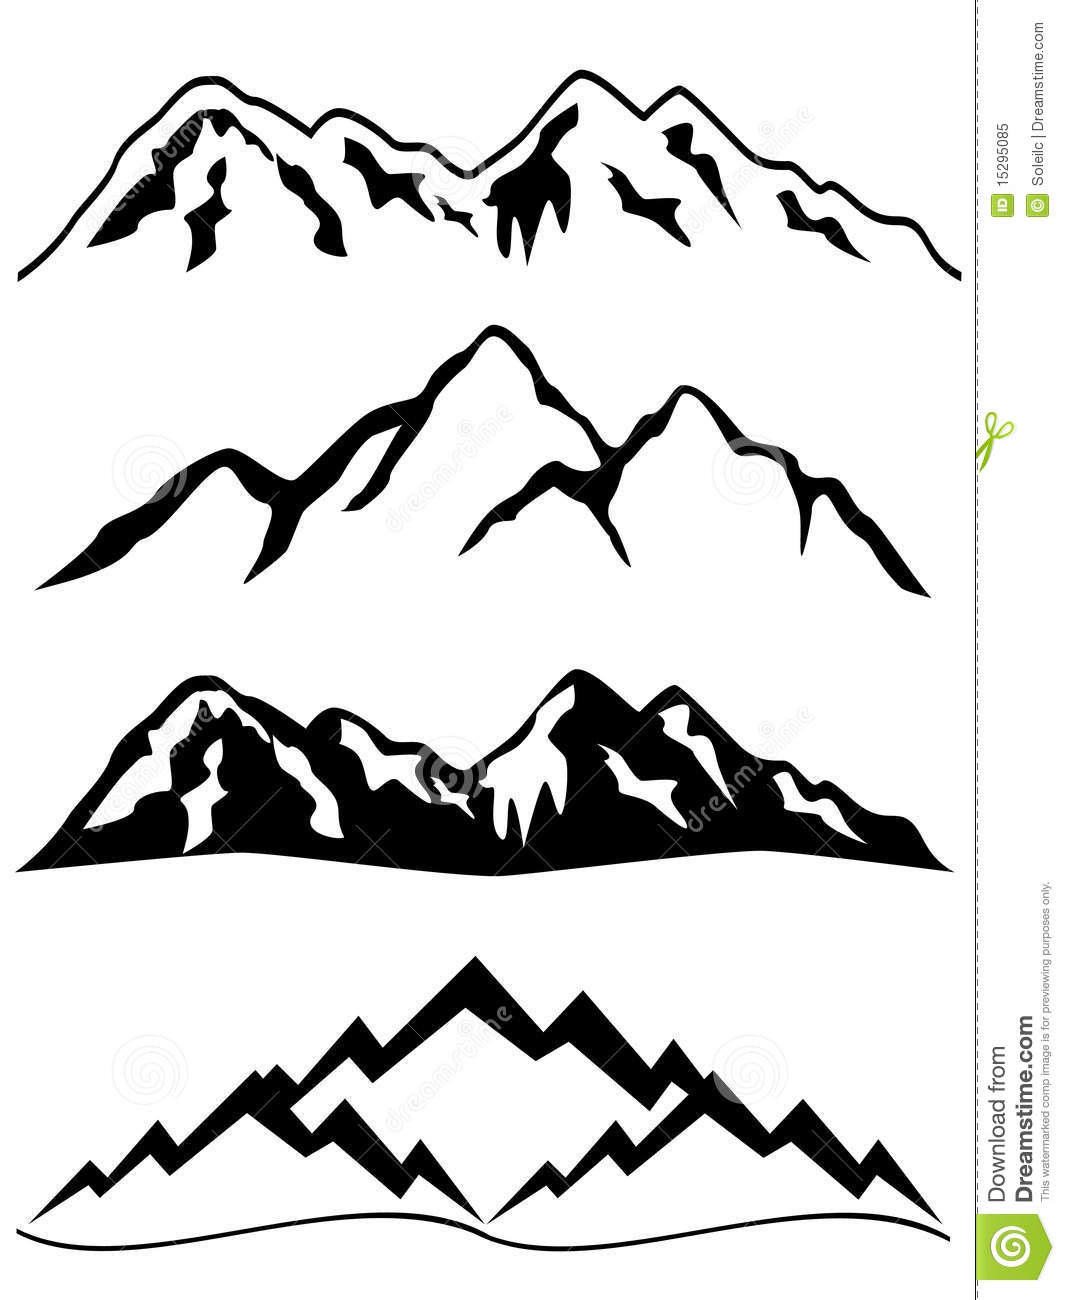 Mountain range clip art.